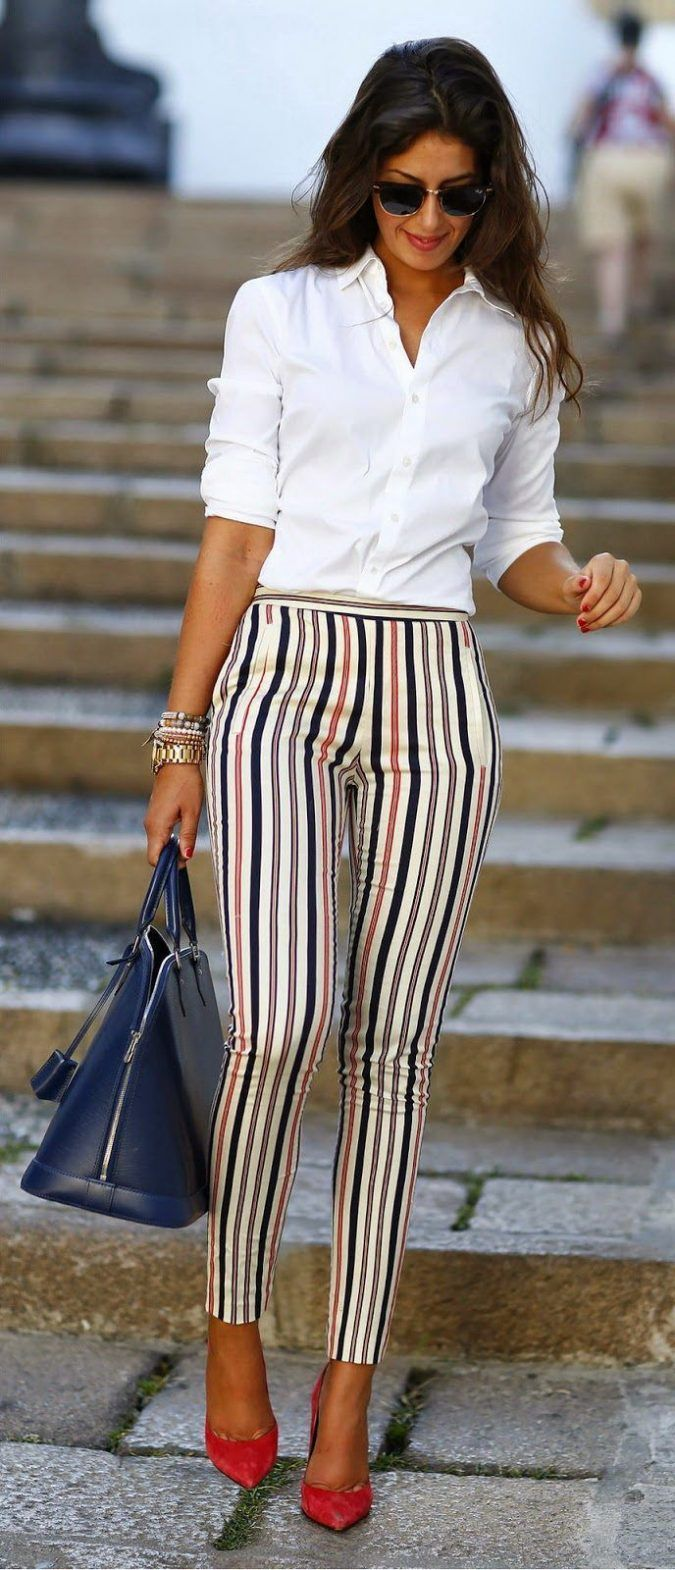 6 Main Fashion Trends of Spring & Summer 2017